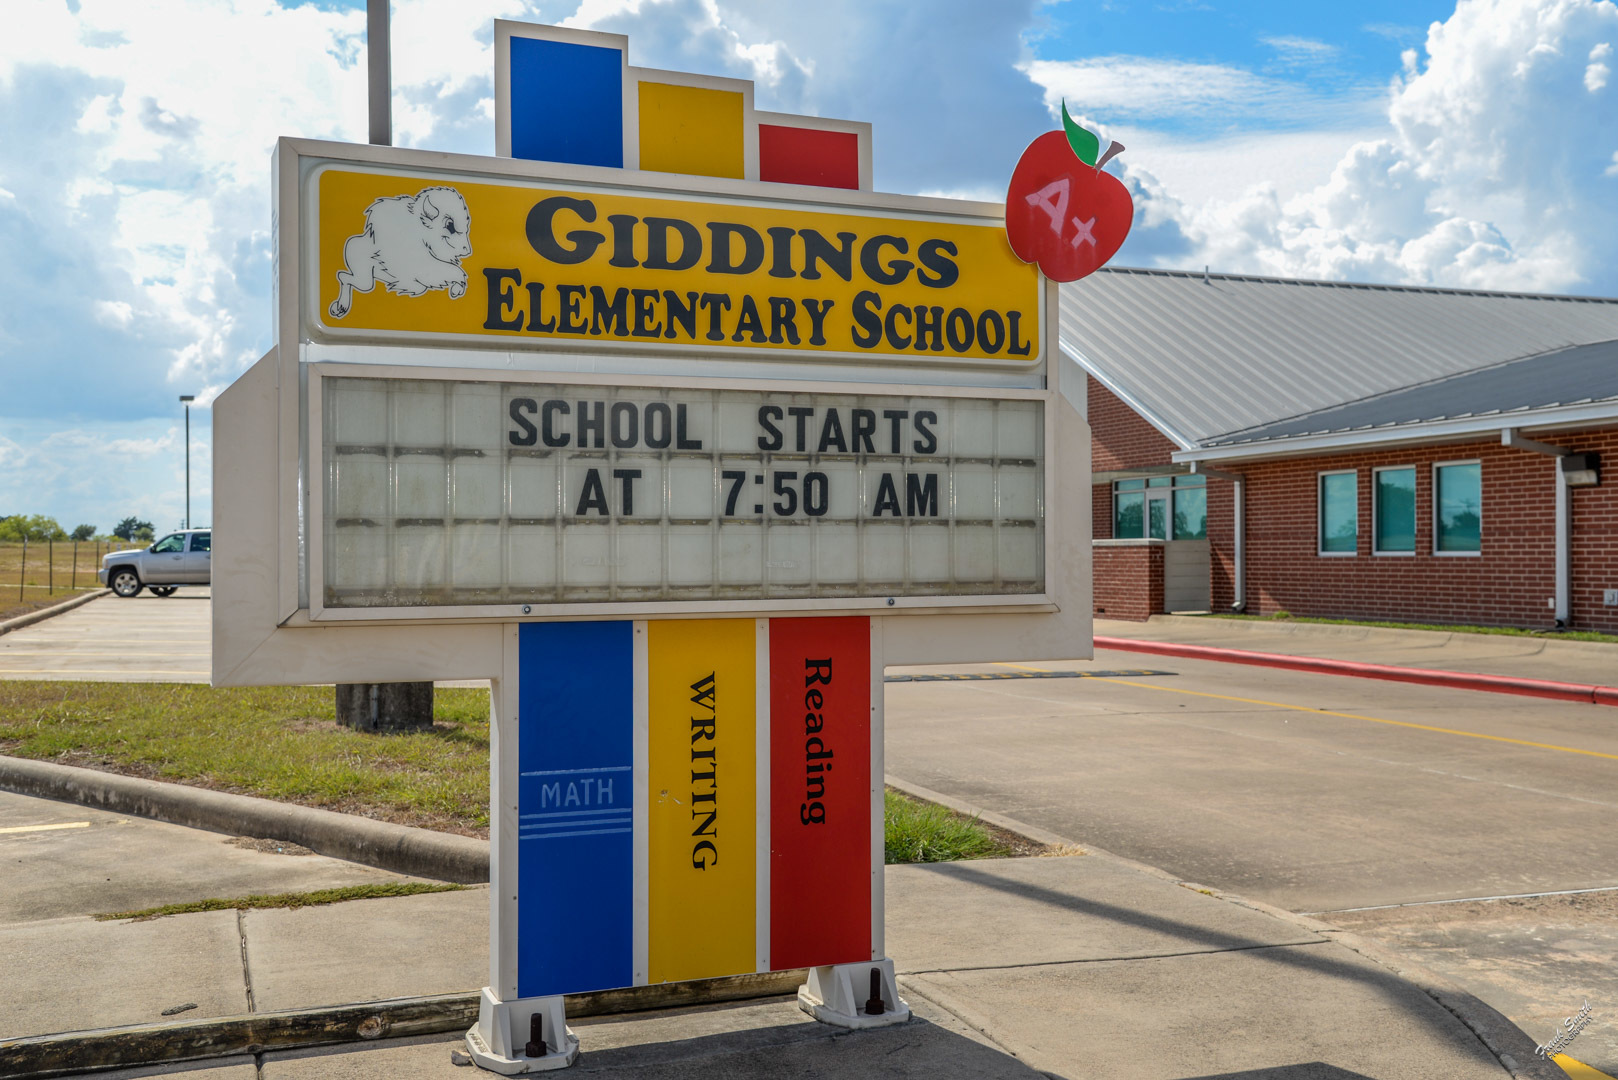 Giddings Elementary School sign